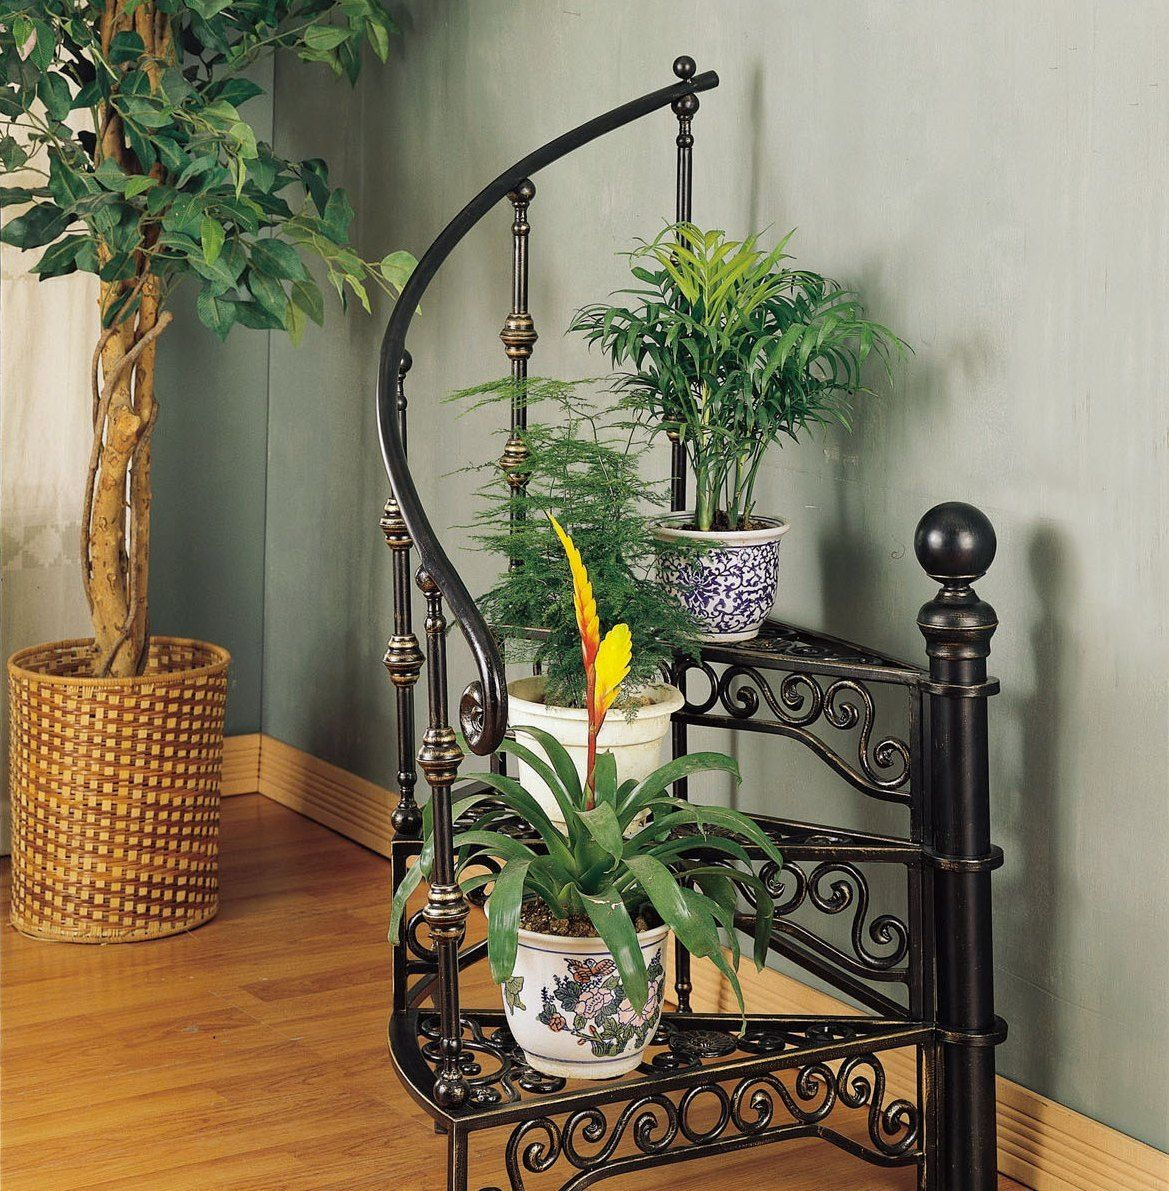 Staircase looking forged metal flower stands